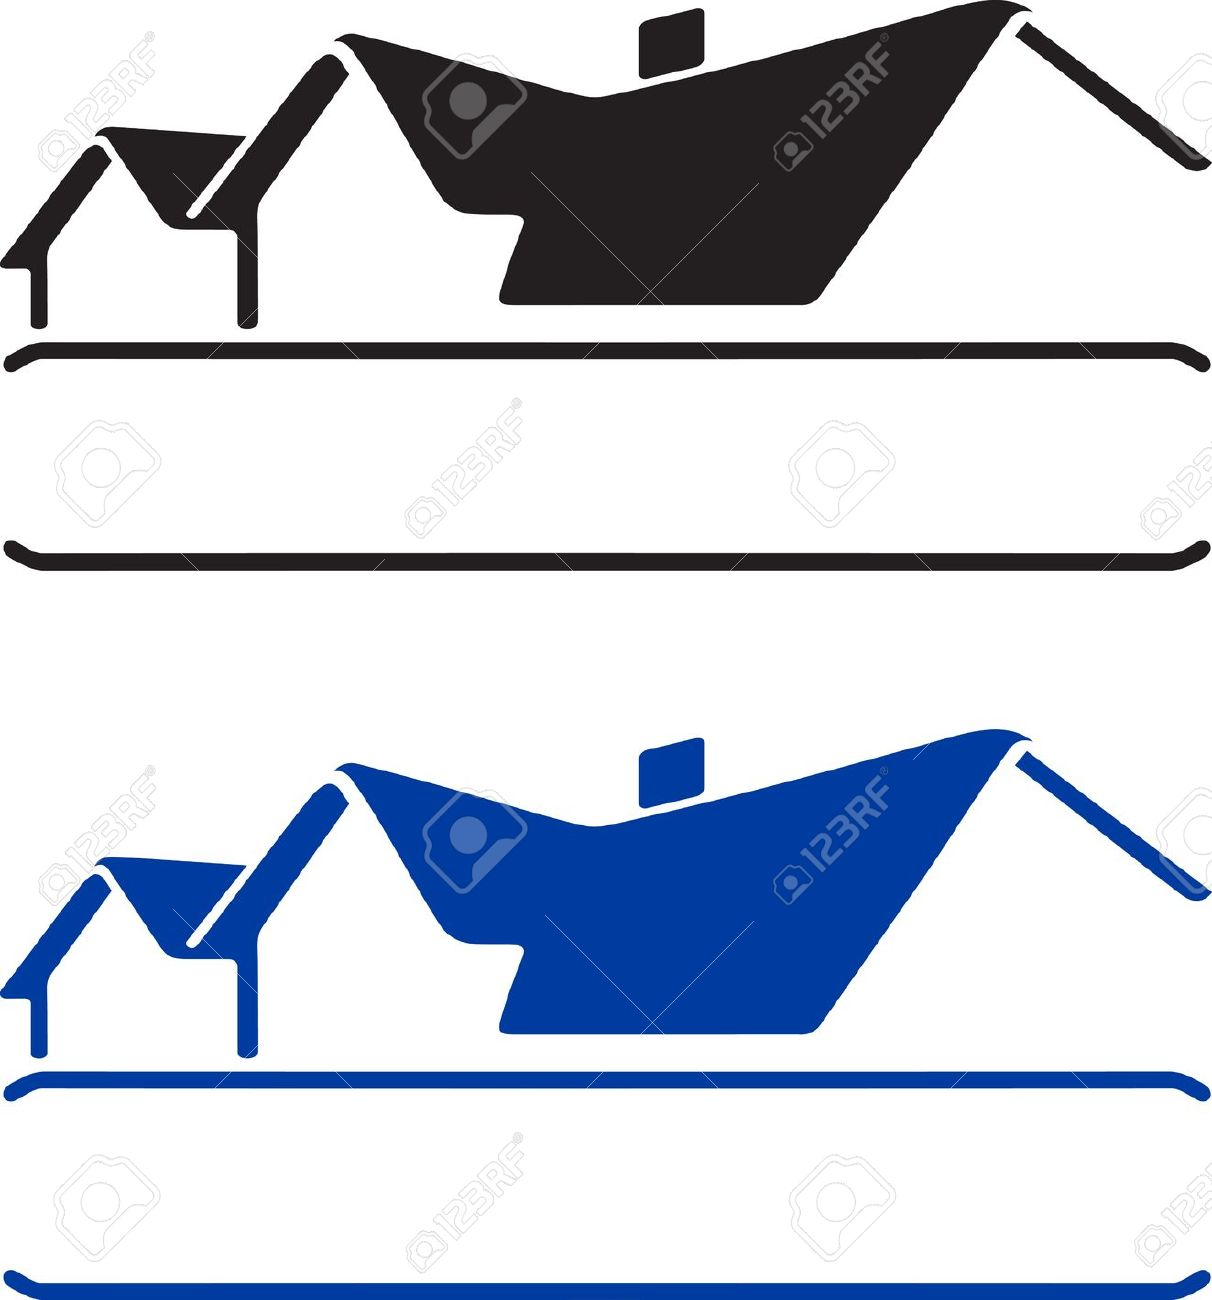 House open roof clipart.